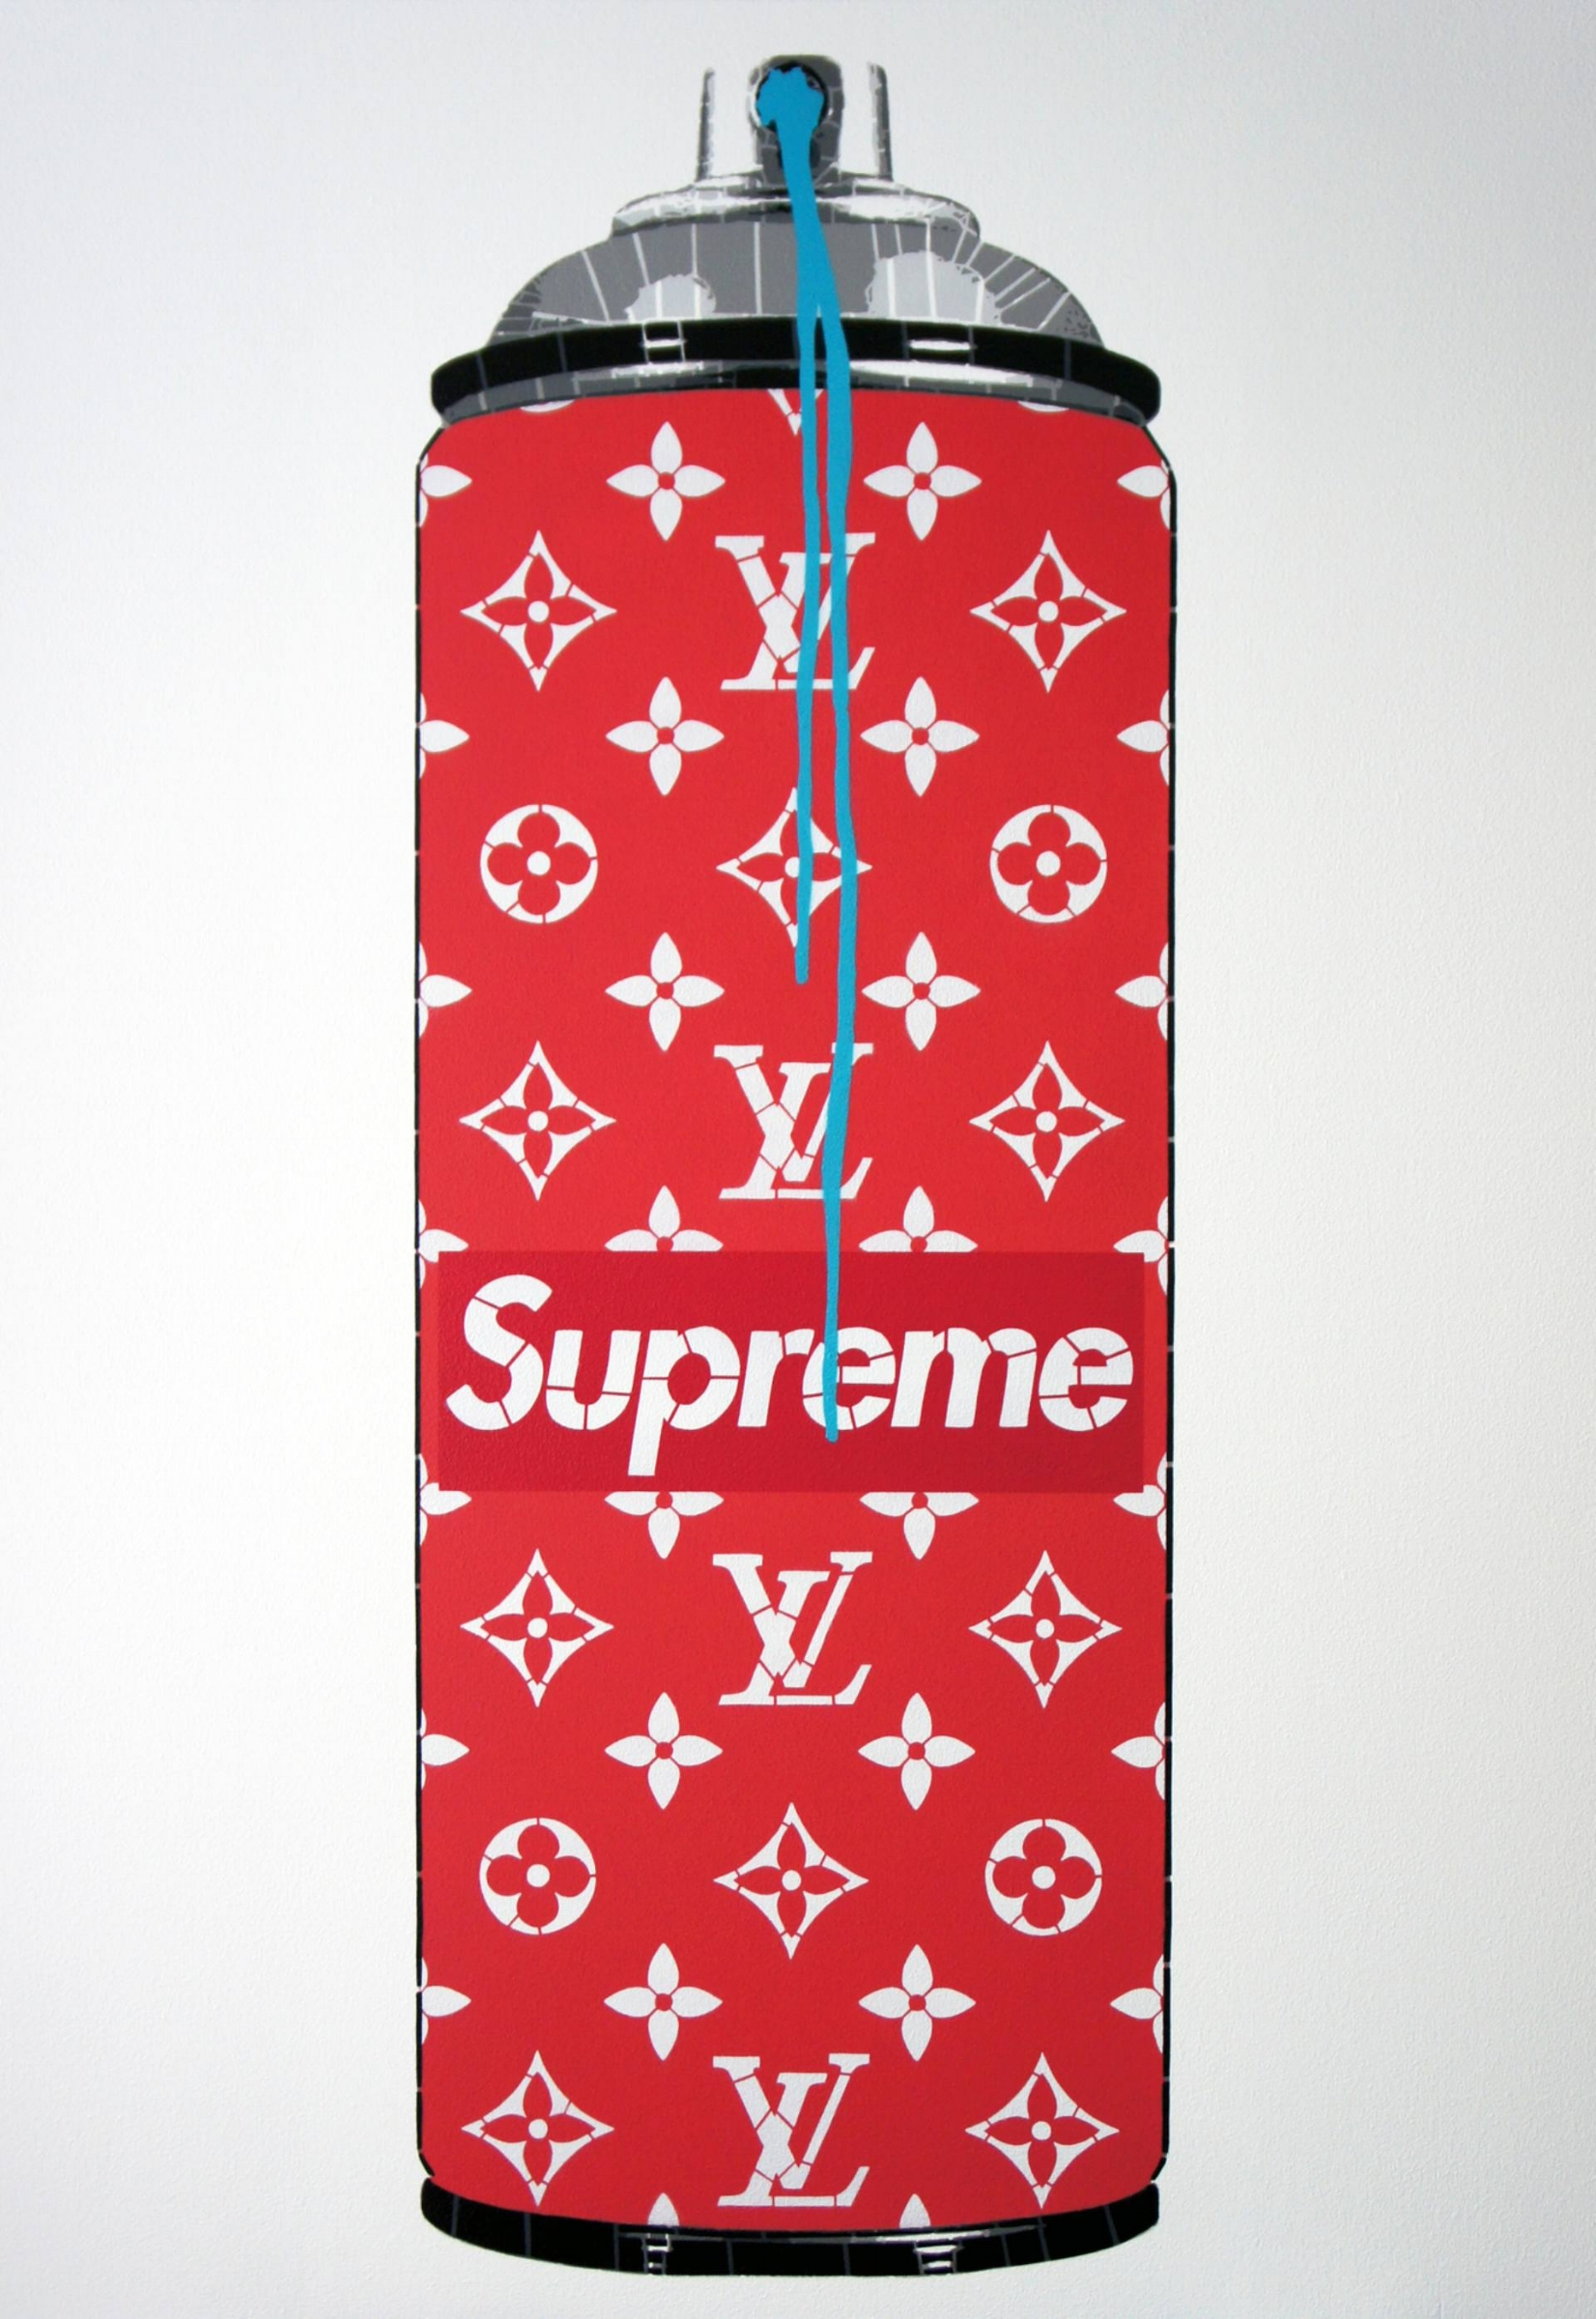 LV Supreme by Campbell La Pun